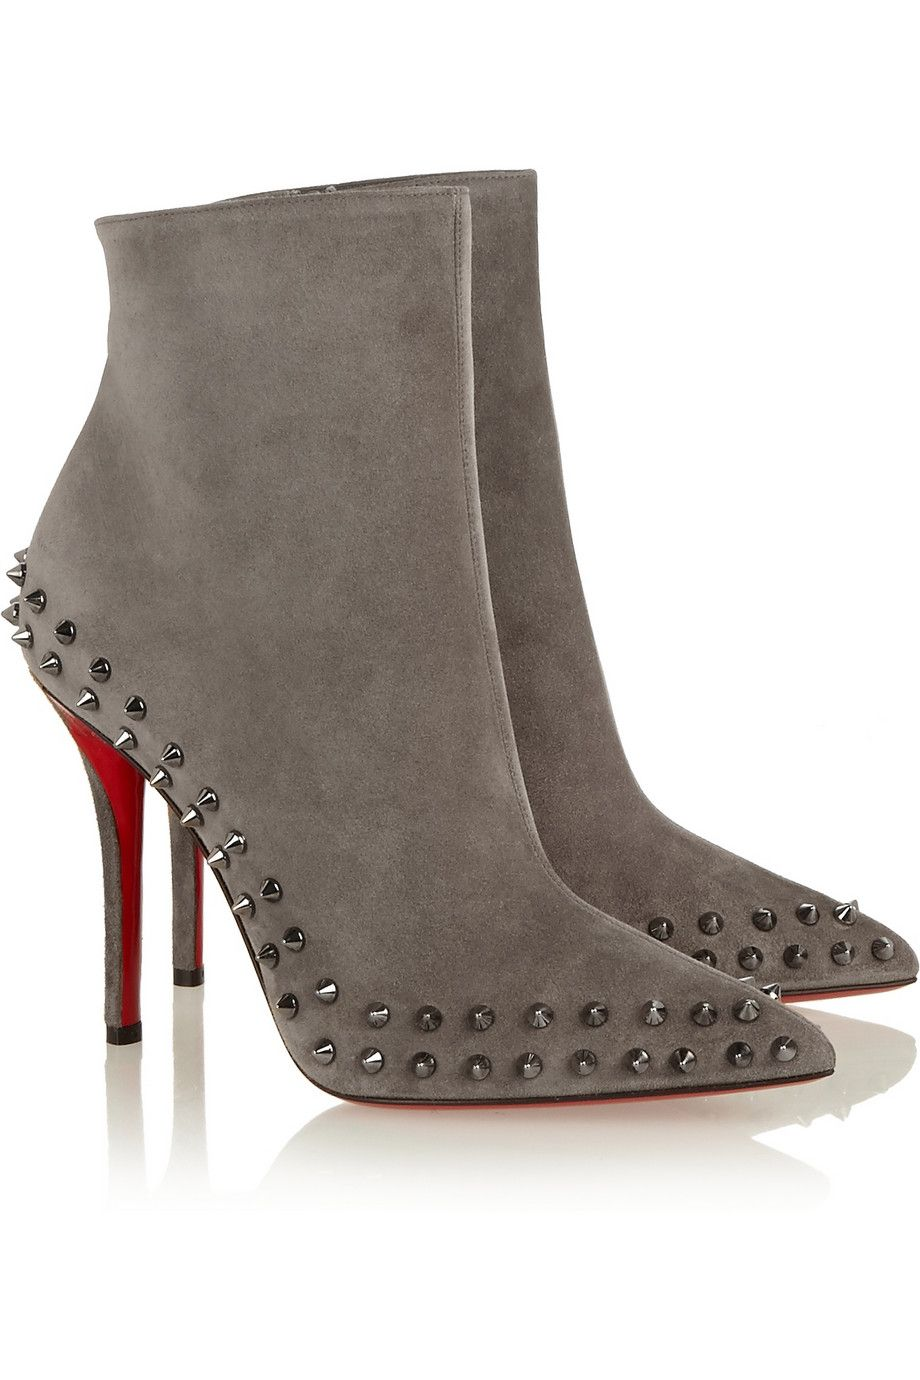 Christian Louboutin Willeta 100 Spiked Booties for sale the cheapest AIO162zr